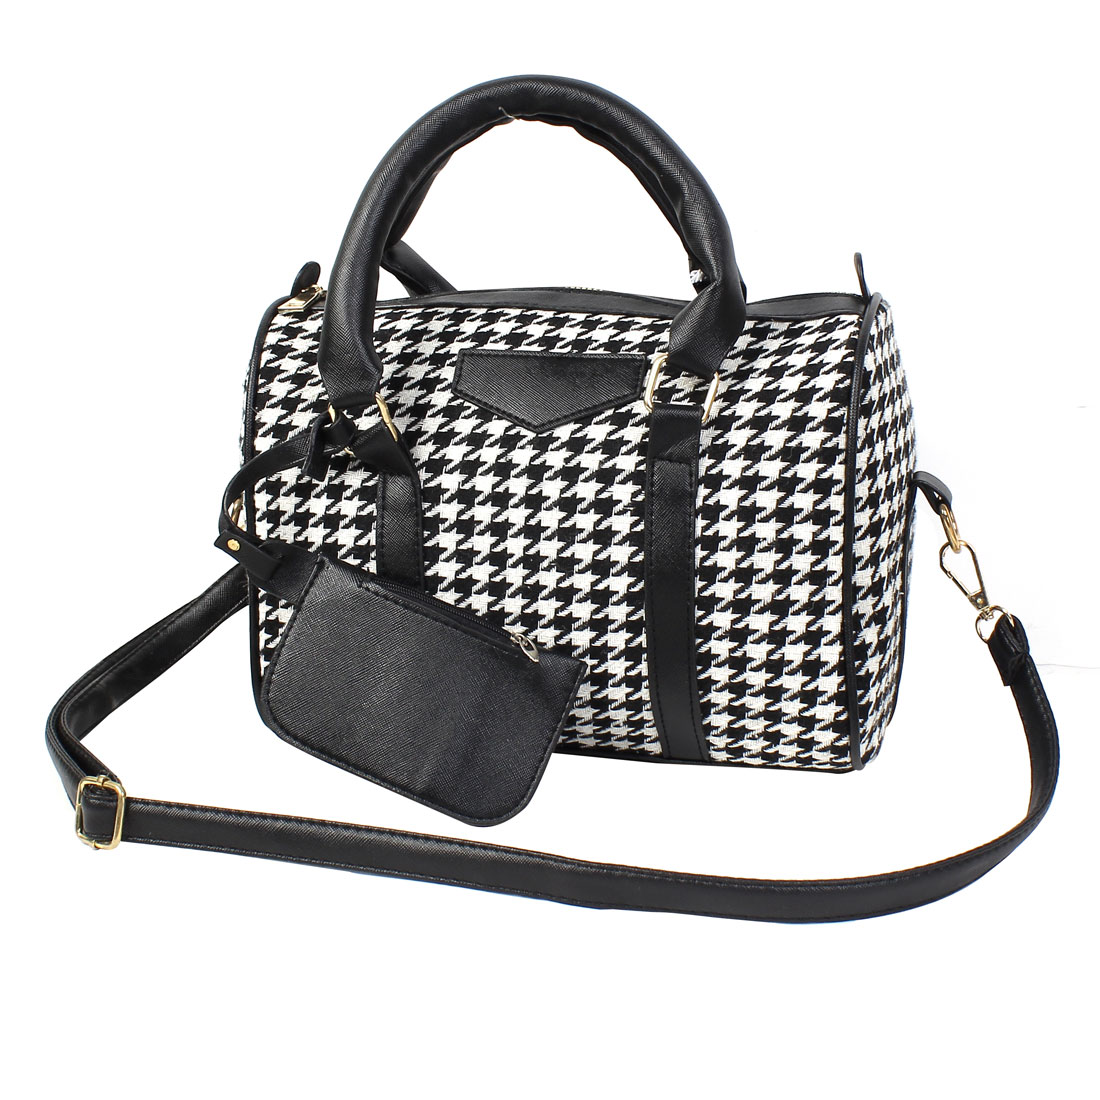 2015 New Women's Houndstooth Tote Messenger Crossbody Handbag Shoulder Bag